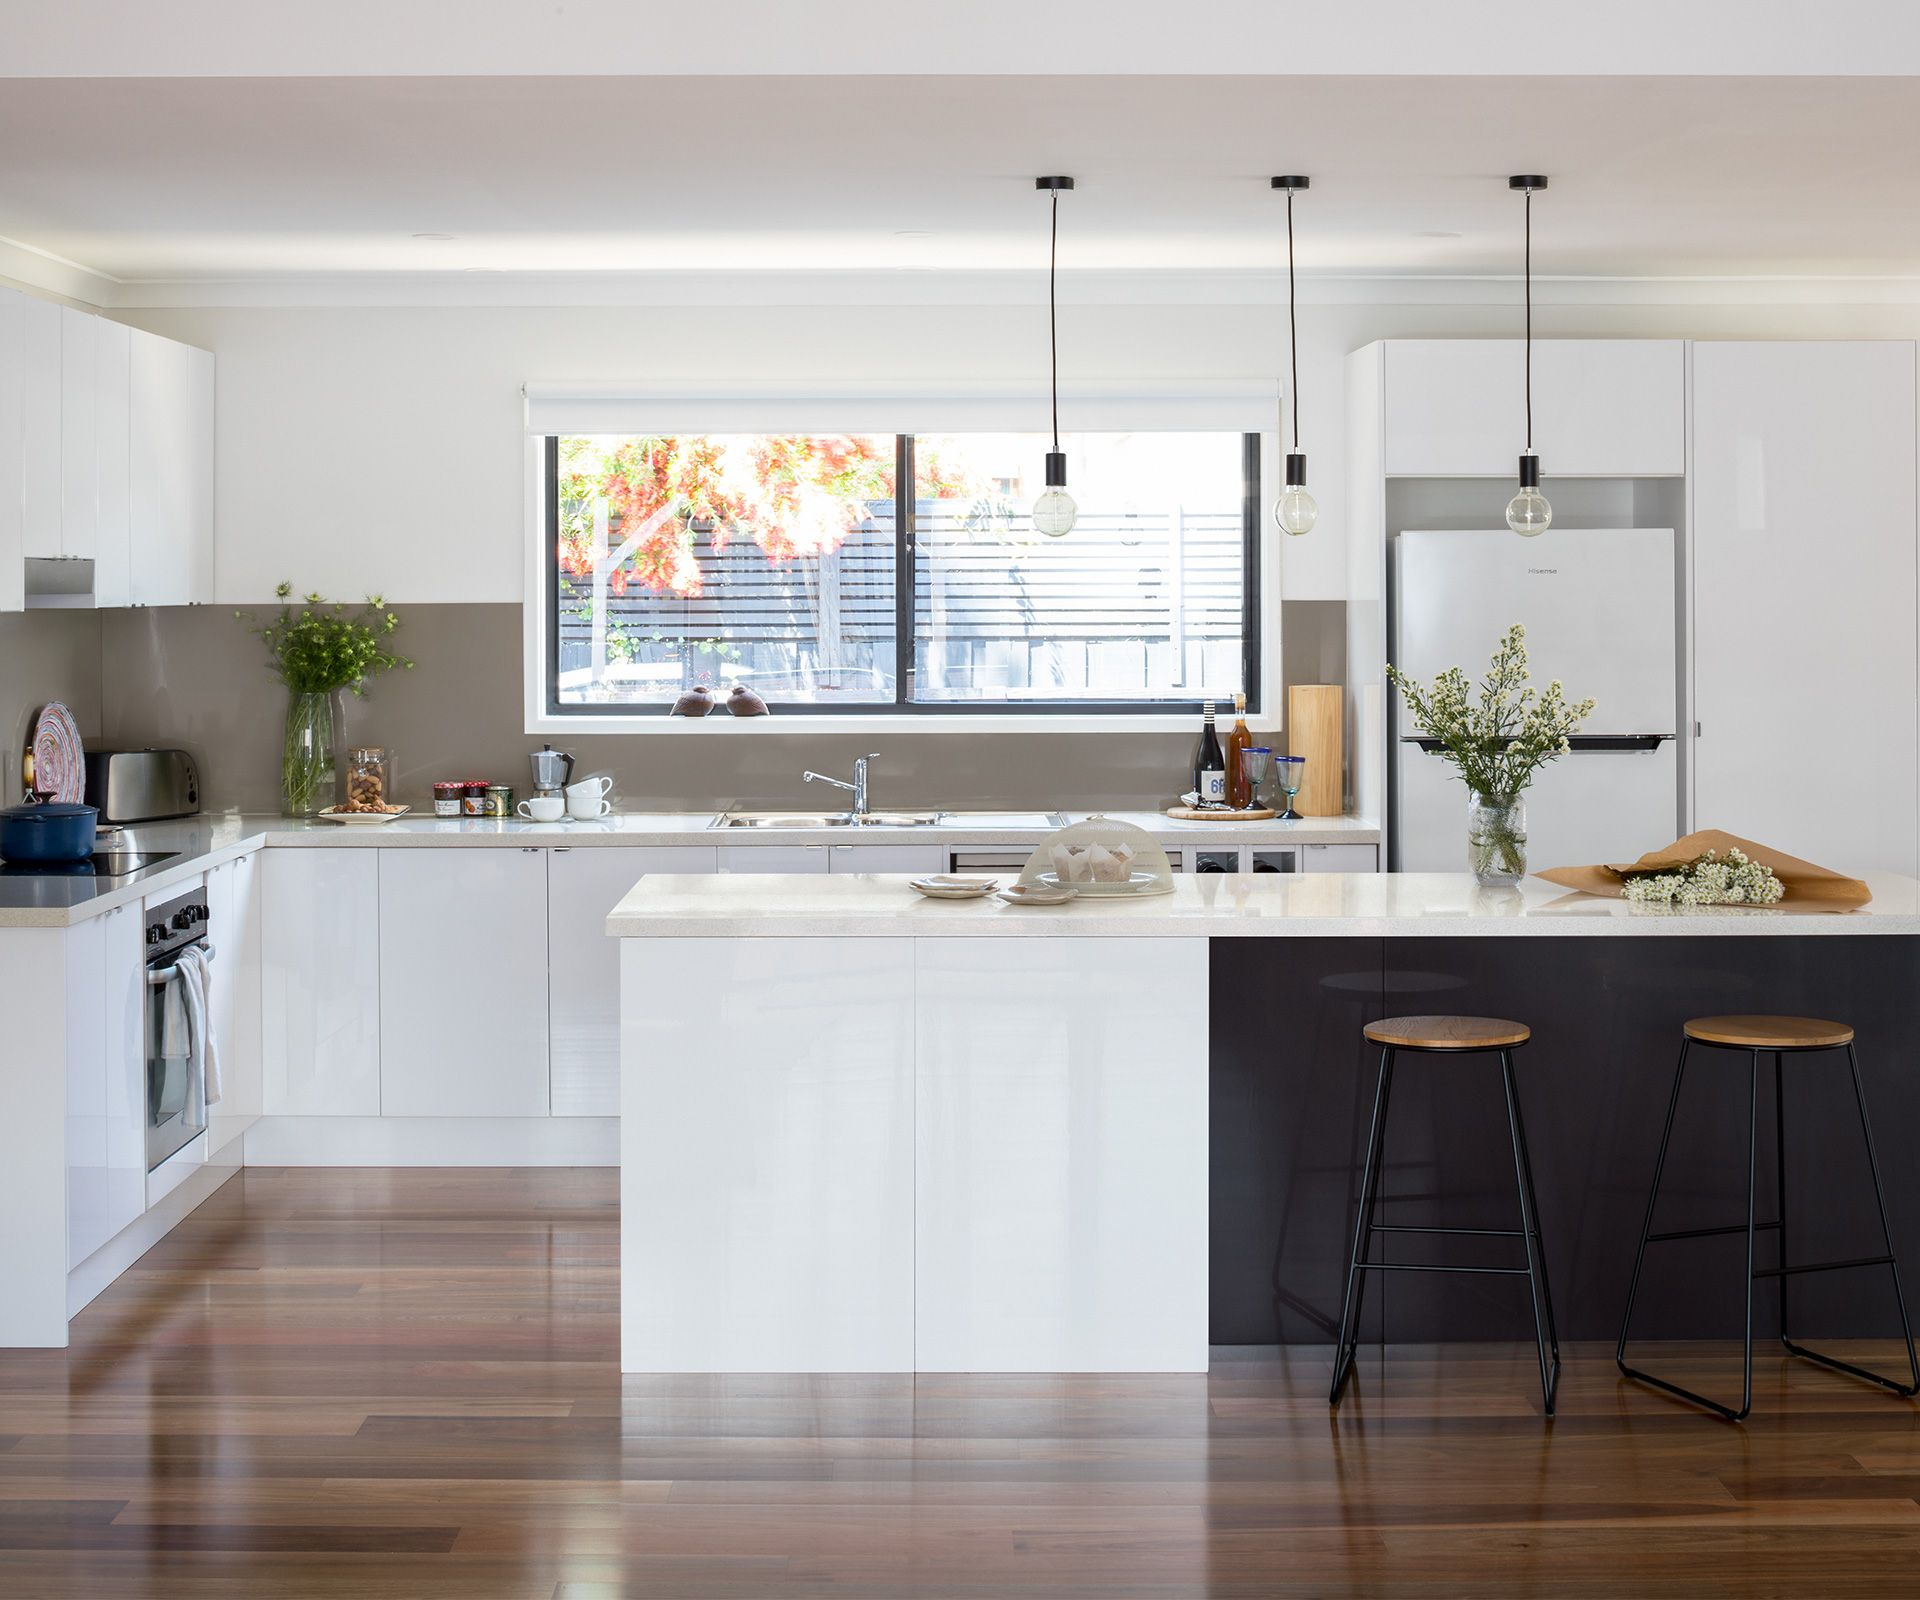 This beachhouse kitchen got the most stylish makeover for